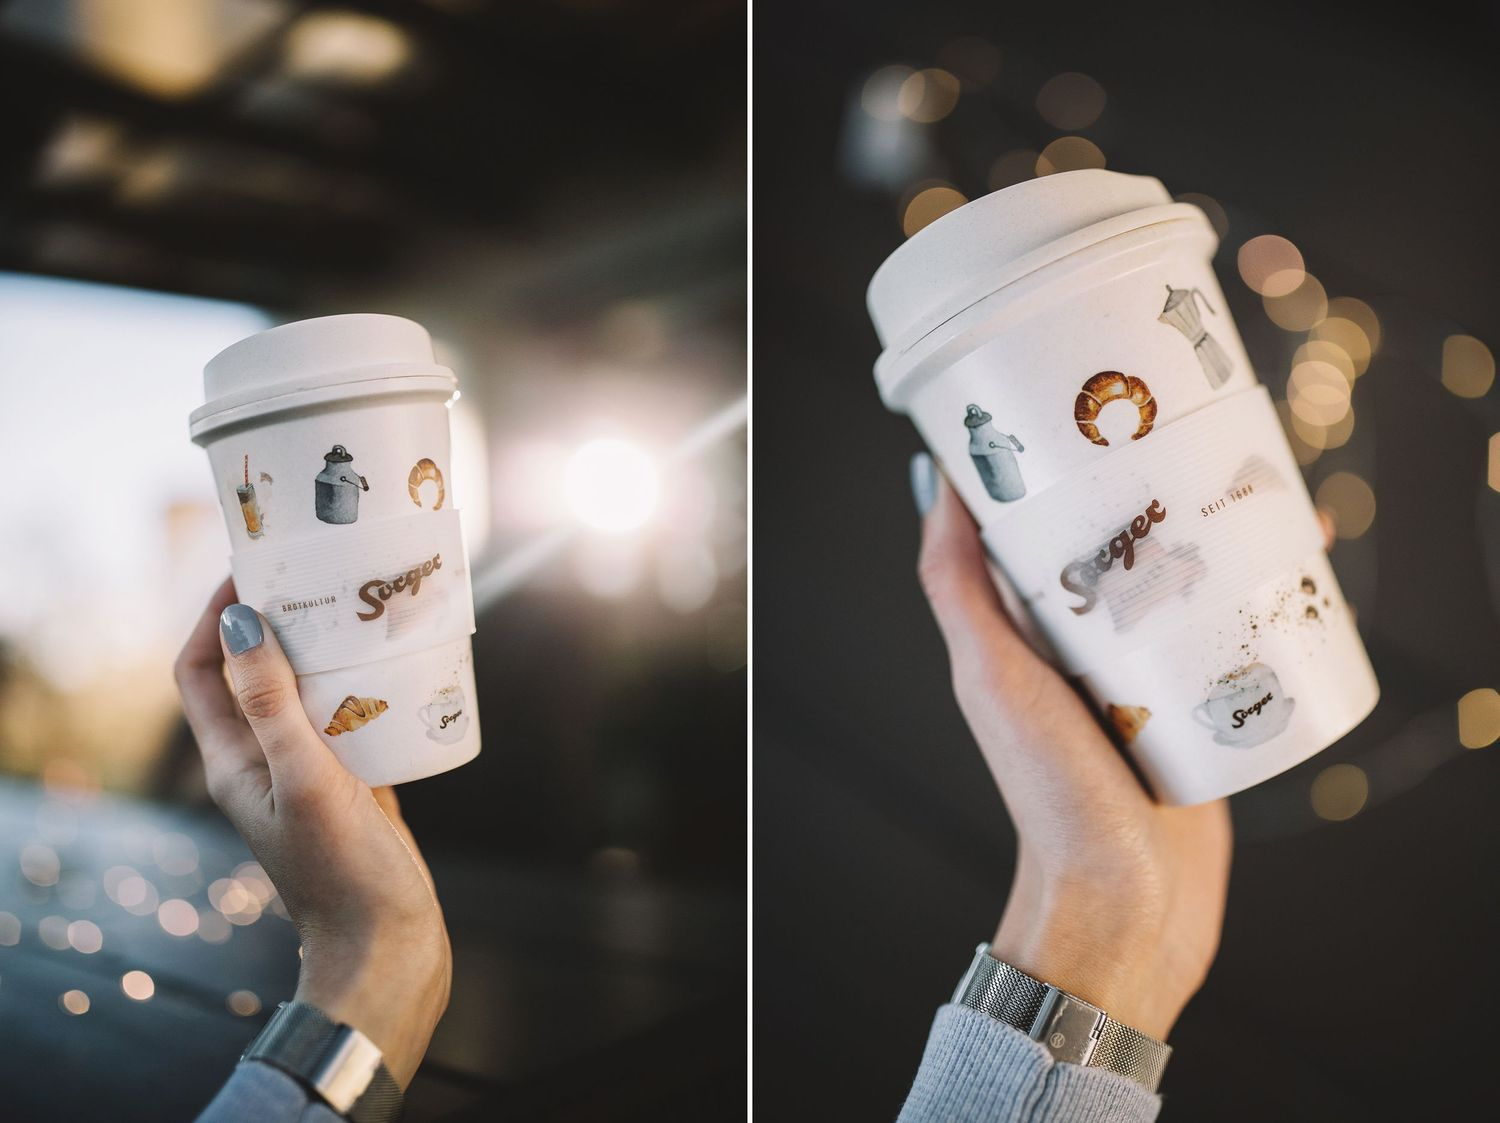 Bamboo coffee cup - Becher illustrations